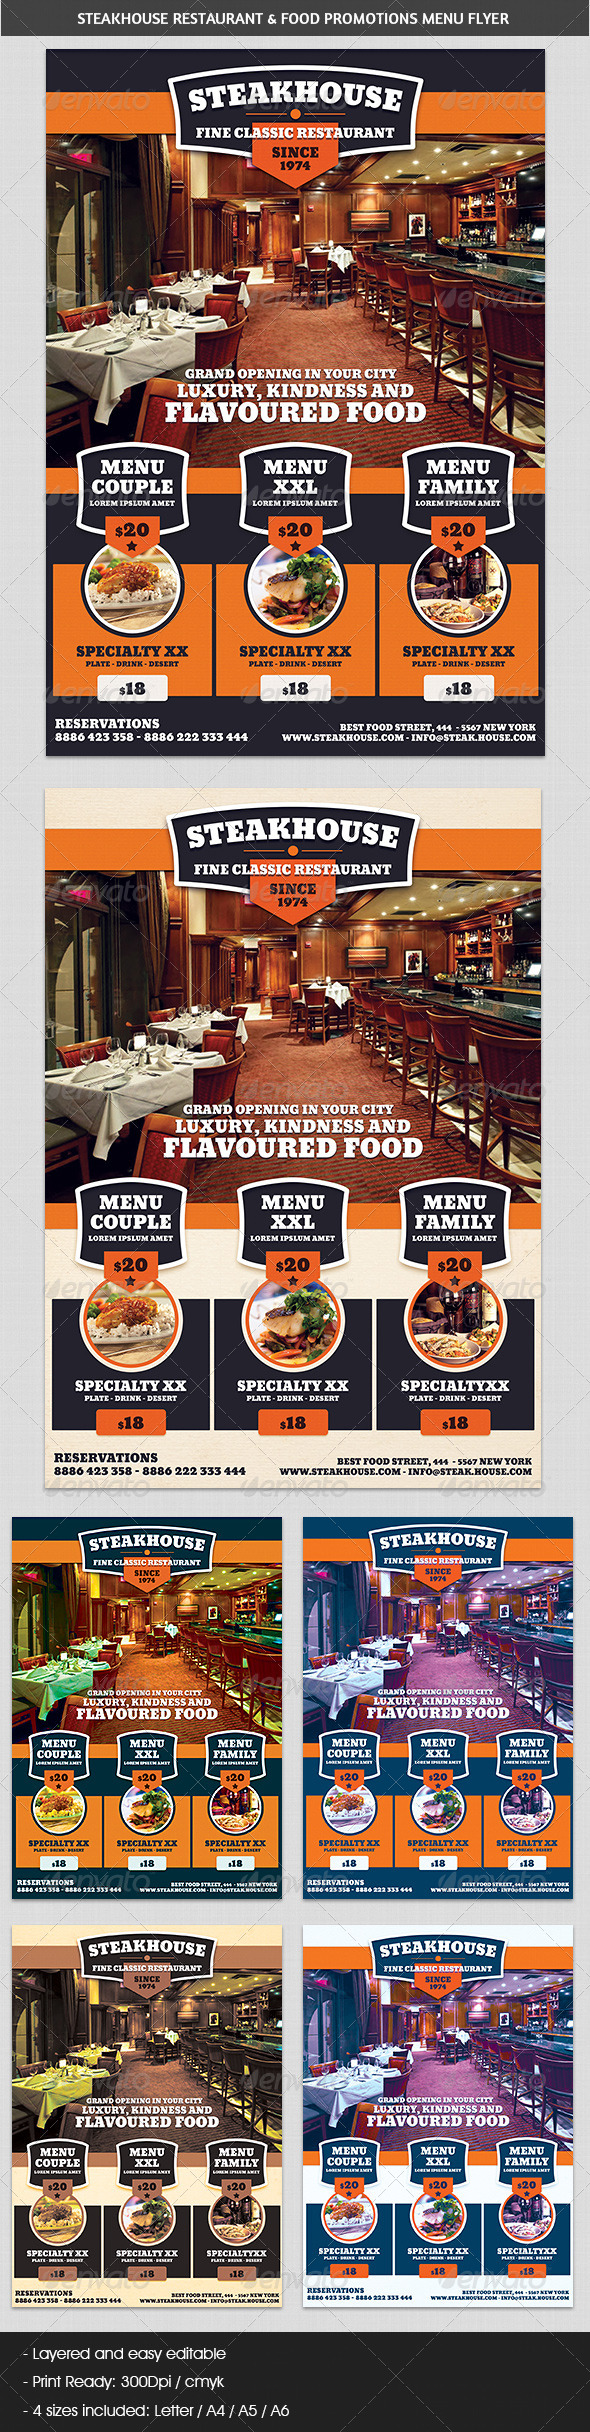 GraphicRiver Steakhouse Restaurant & Food Promotions Flyer 5791759